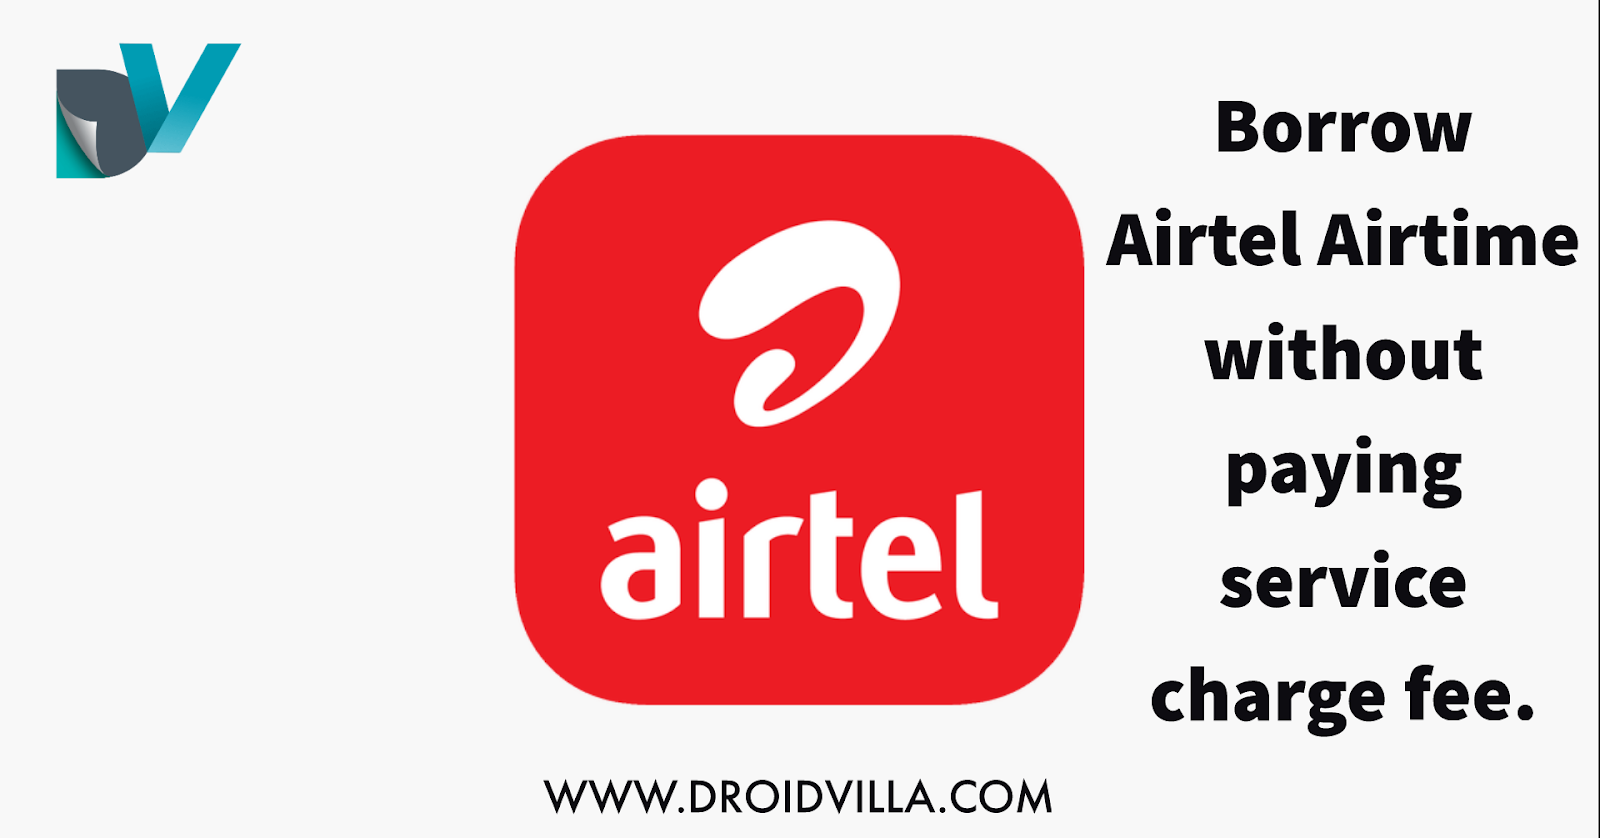 Hot: How to borrow Airtel airtime without service charge fee